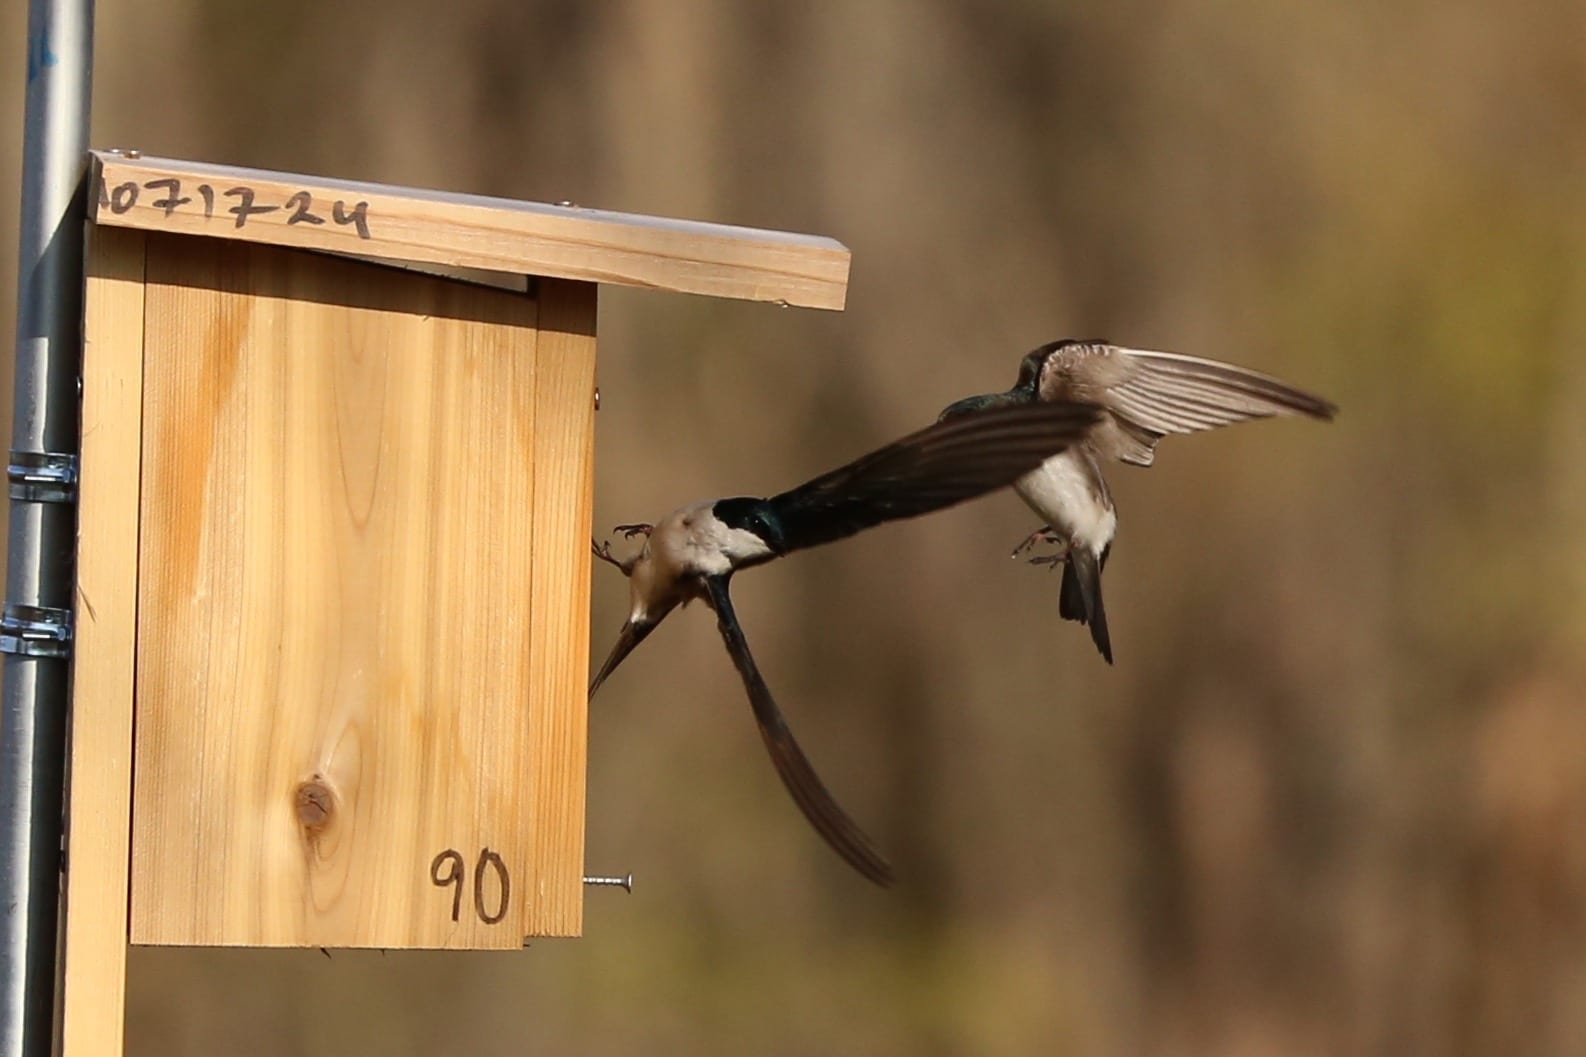 One adult bird in the background is chasing another bird in the foreground mid-air near a single wooden bird box attached to a metal pole. The bird in the background is arching its body and extending its legs towards the bird in the foreground, and the bird in the foreground is glancing at the other bird over its right shoulder. Both birds have white feathers on their abdomens, with iridescent green and blue feathers on their heads, necks, and backs.